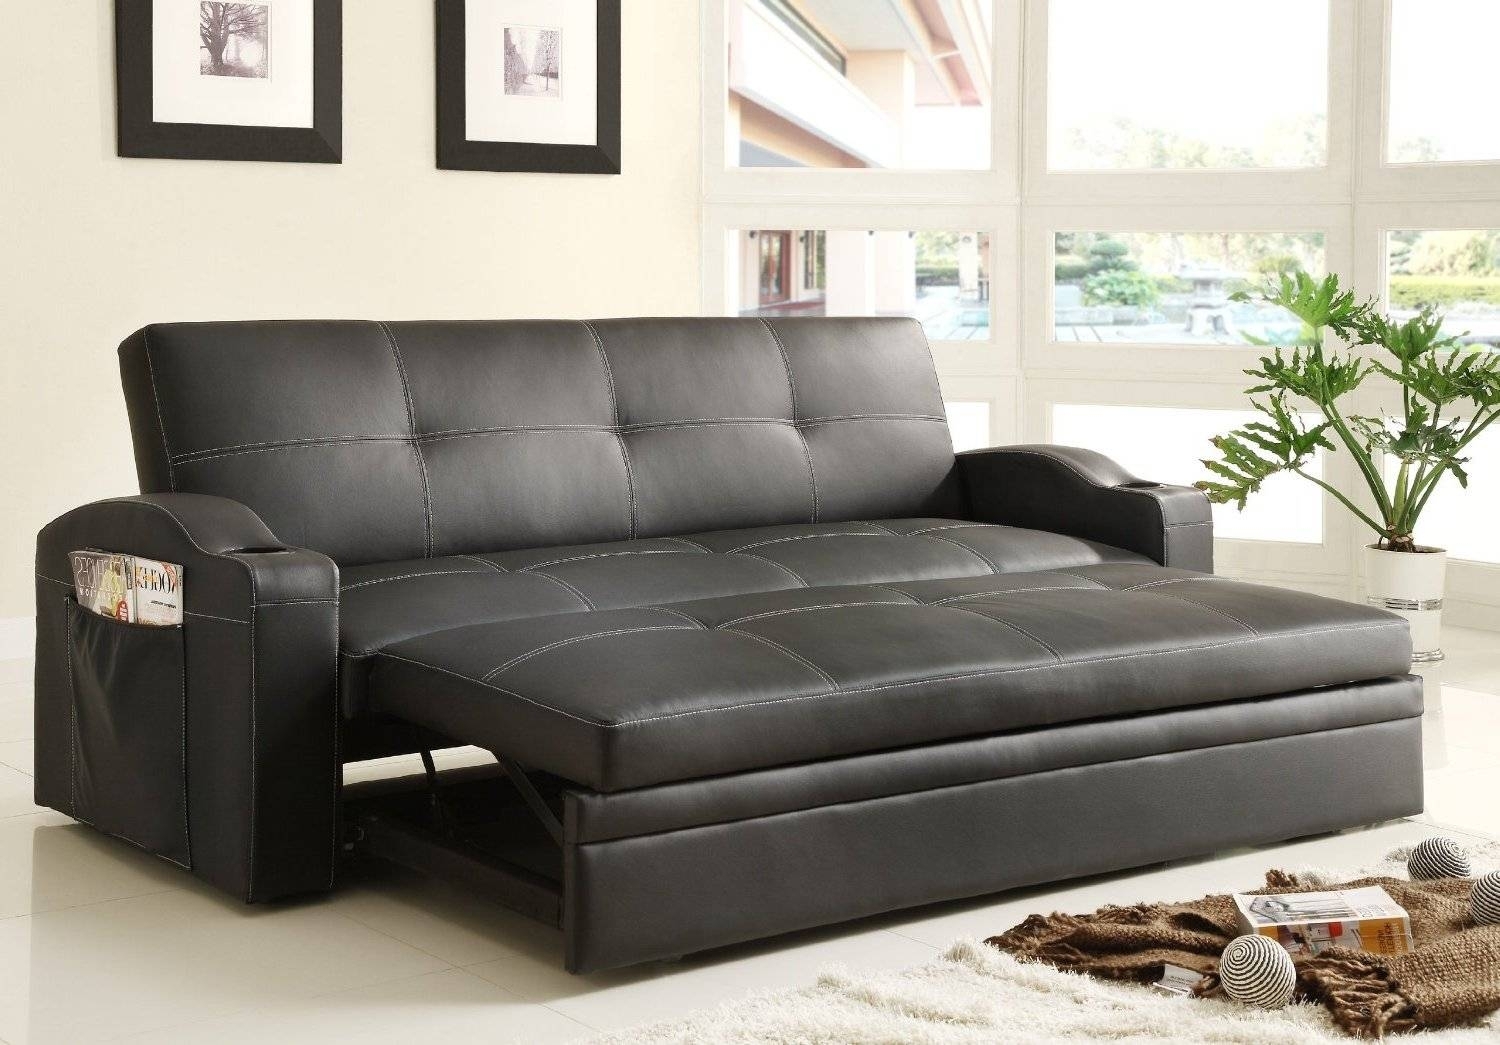 15 best ideas of queen size convertible sofa beds. Black Bedroom Furniture Sets. Home Design Ideas